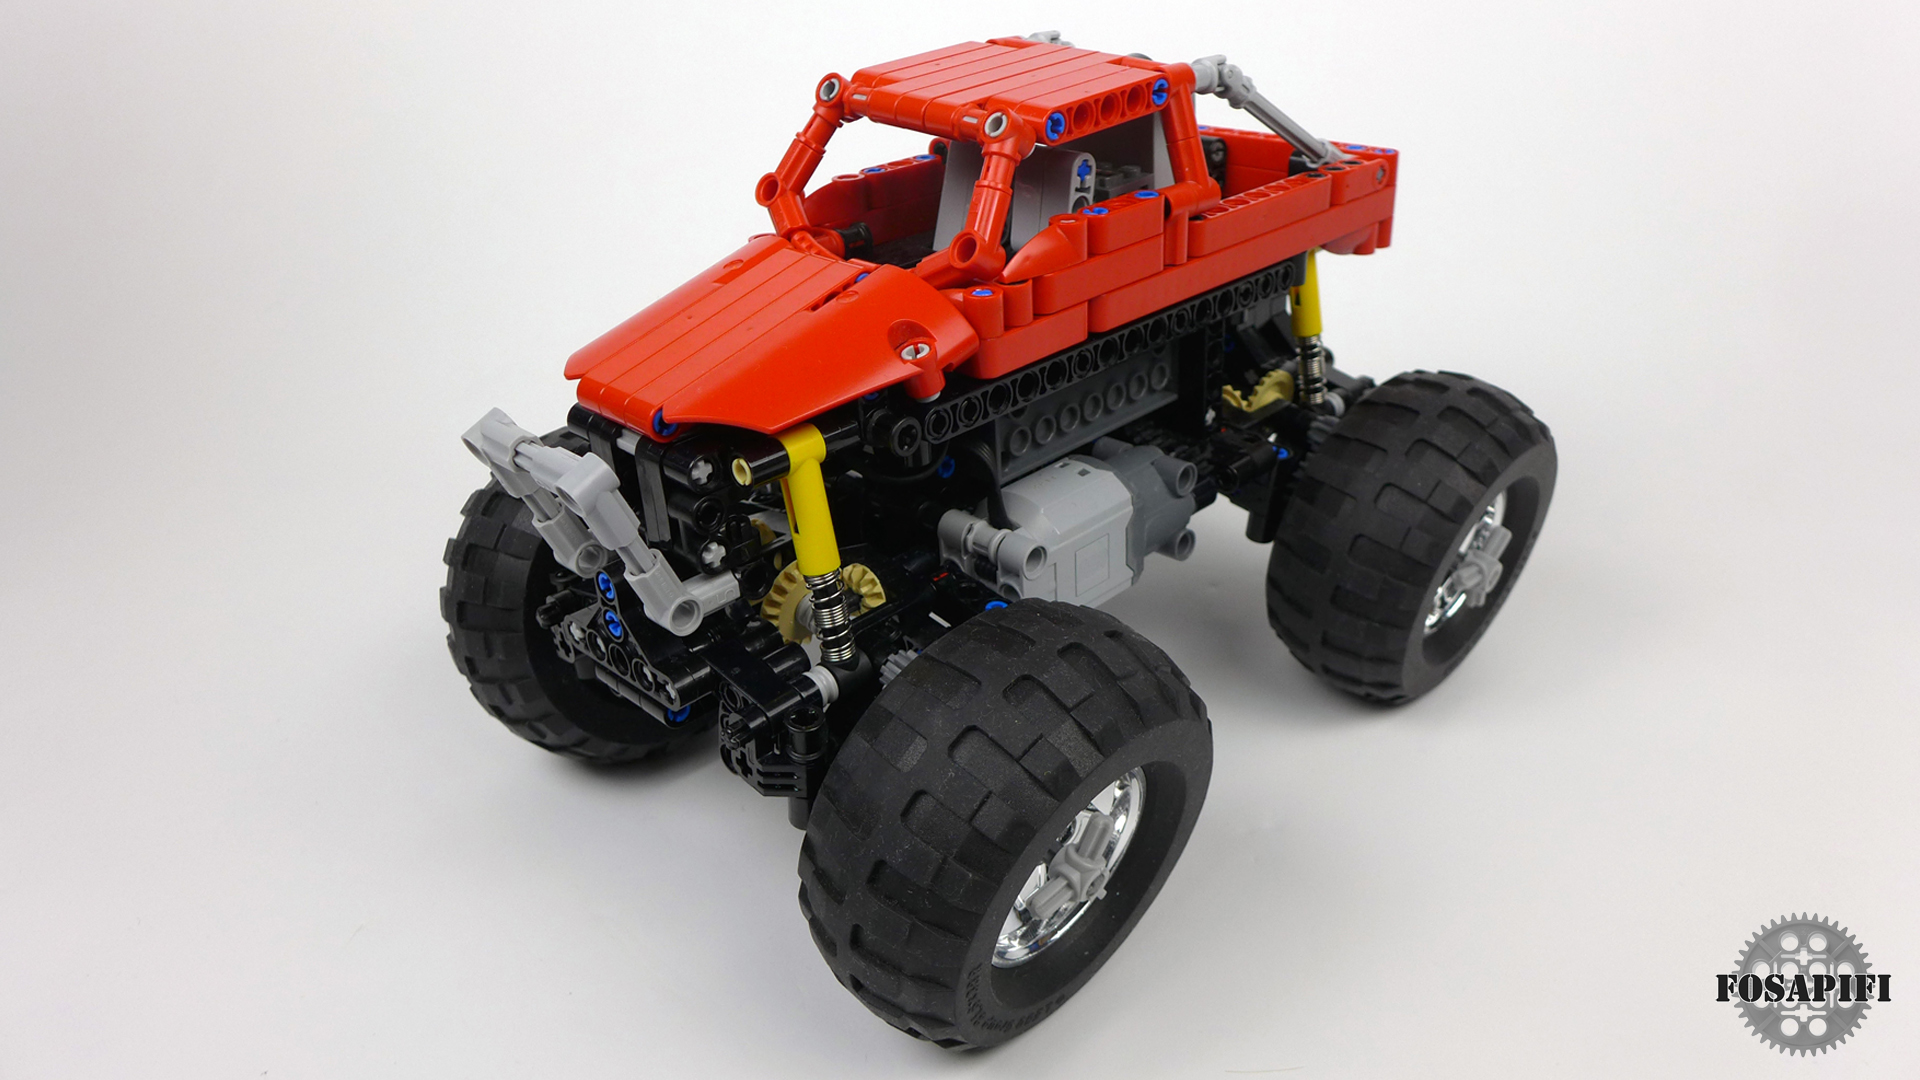 Lego Technic Creations By Fosapifi Offroad Truck Moc